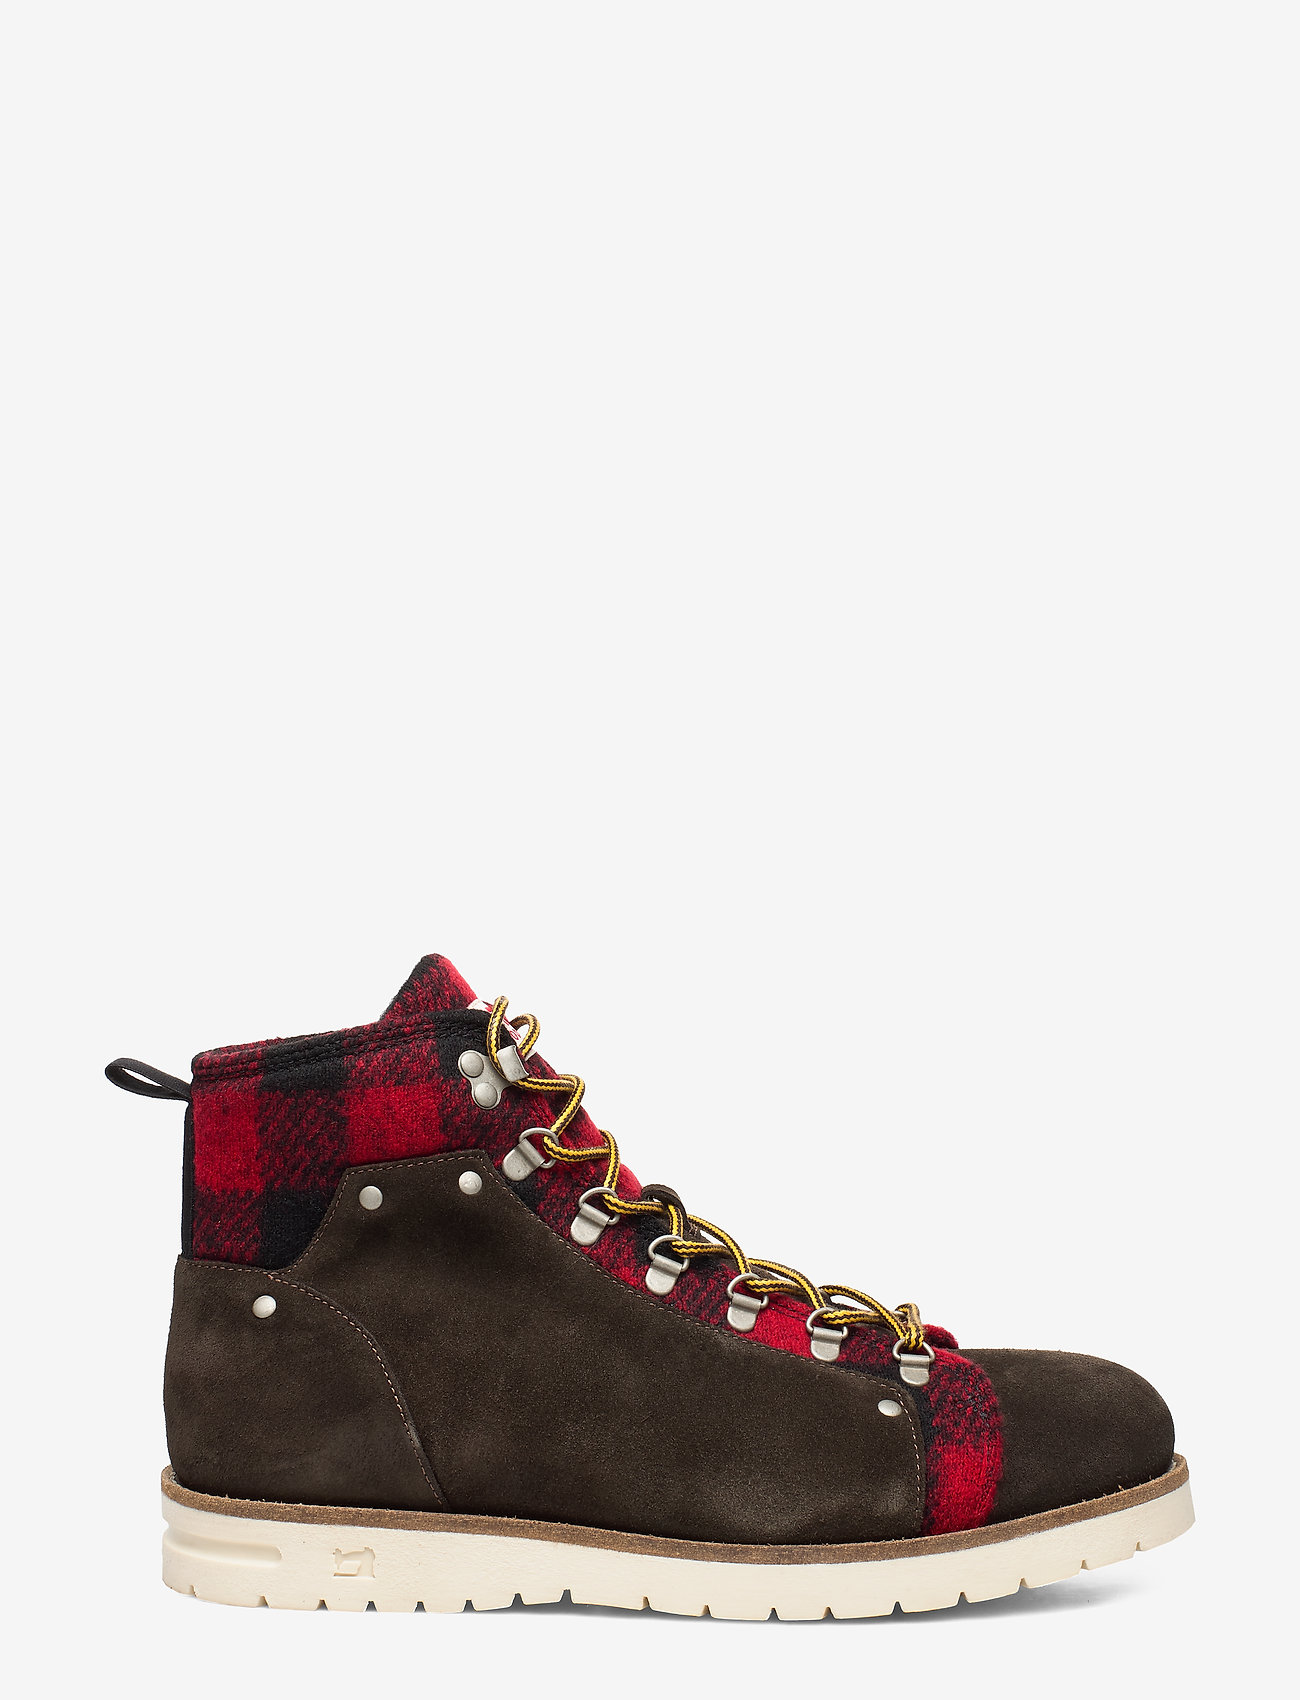 Scotch & Soda Shoes - Borrel Mid laceboot - veter schoenen - dk brown+blk/red - 1